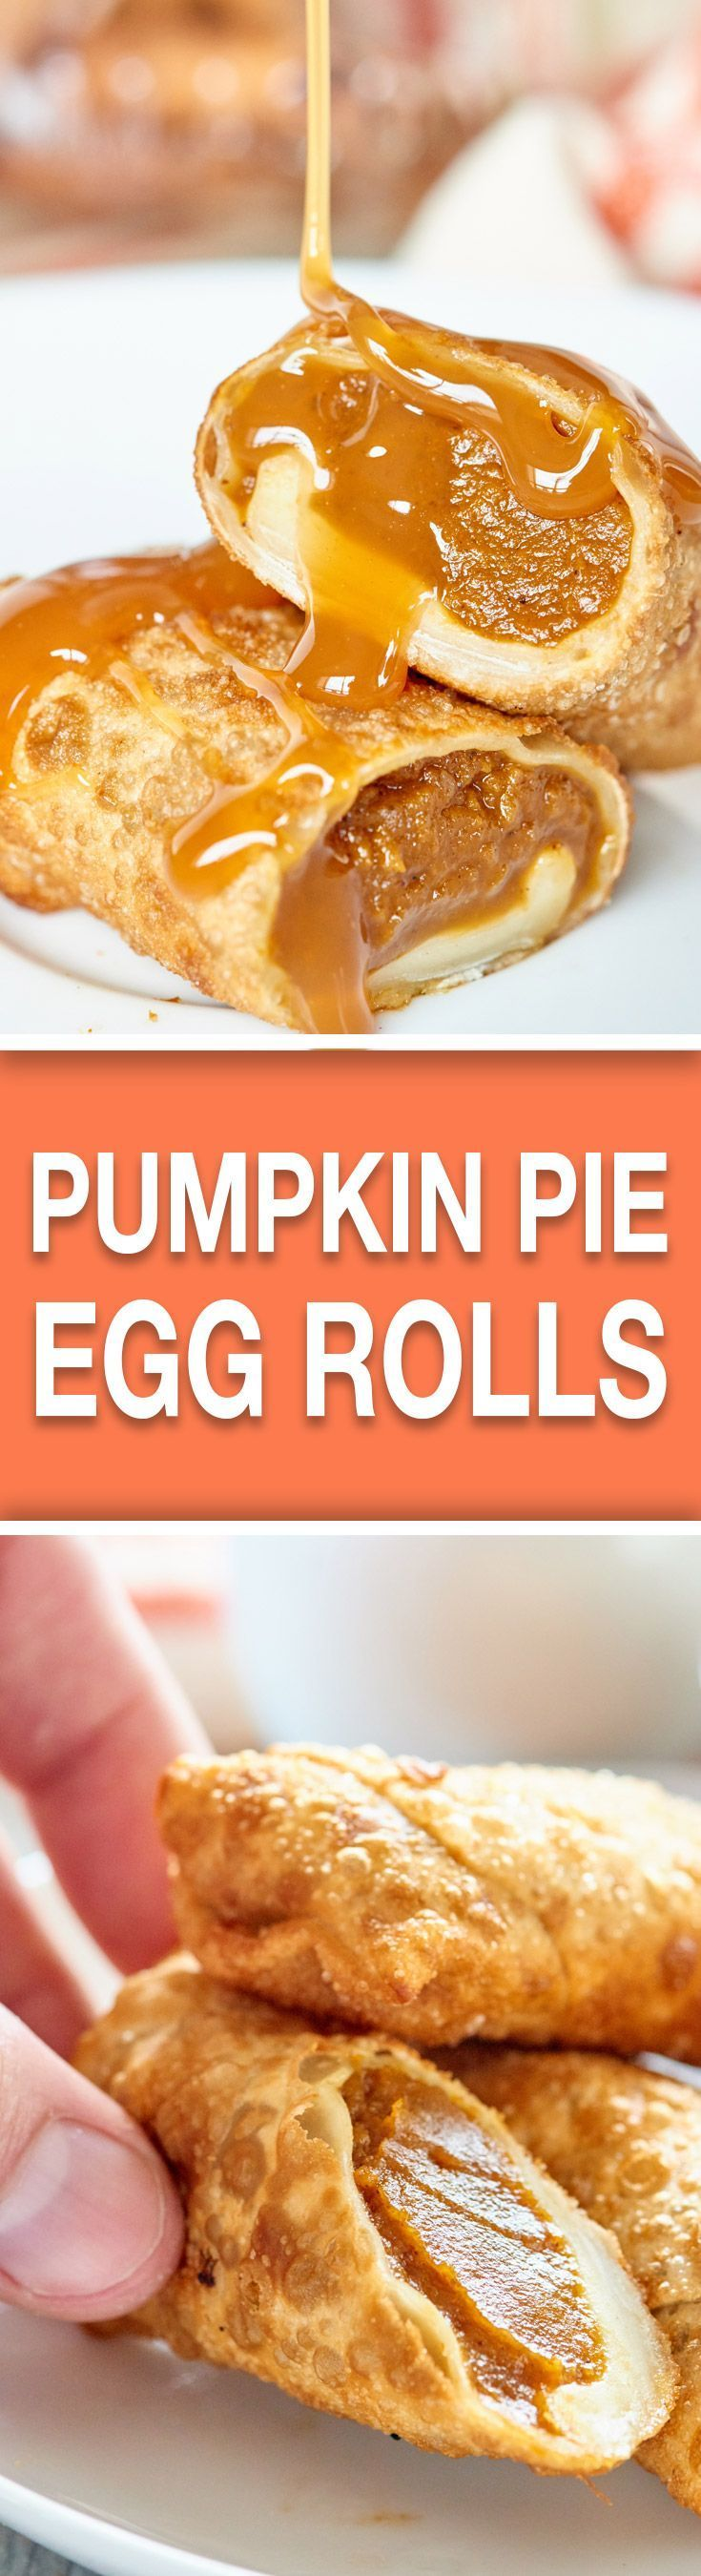 Pumpkin Pie Egg Rolls